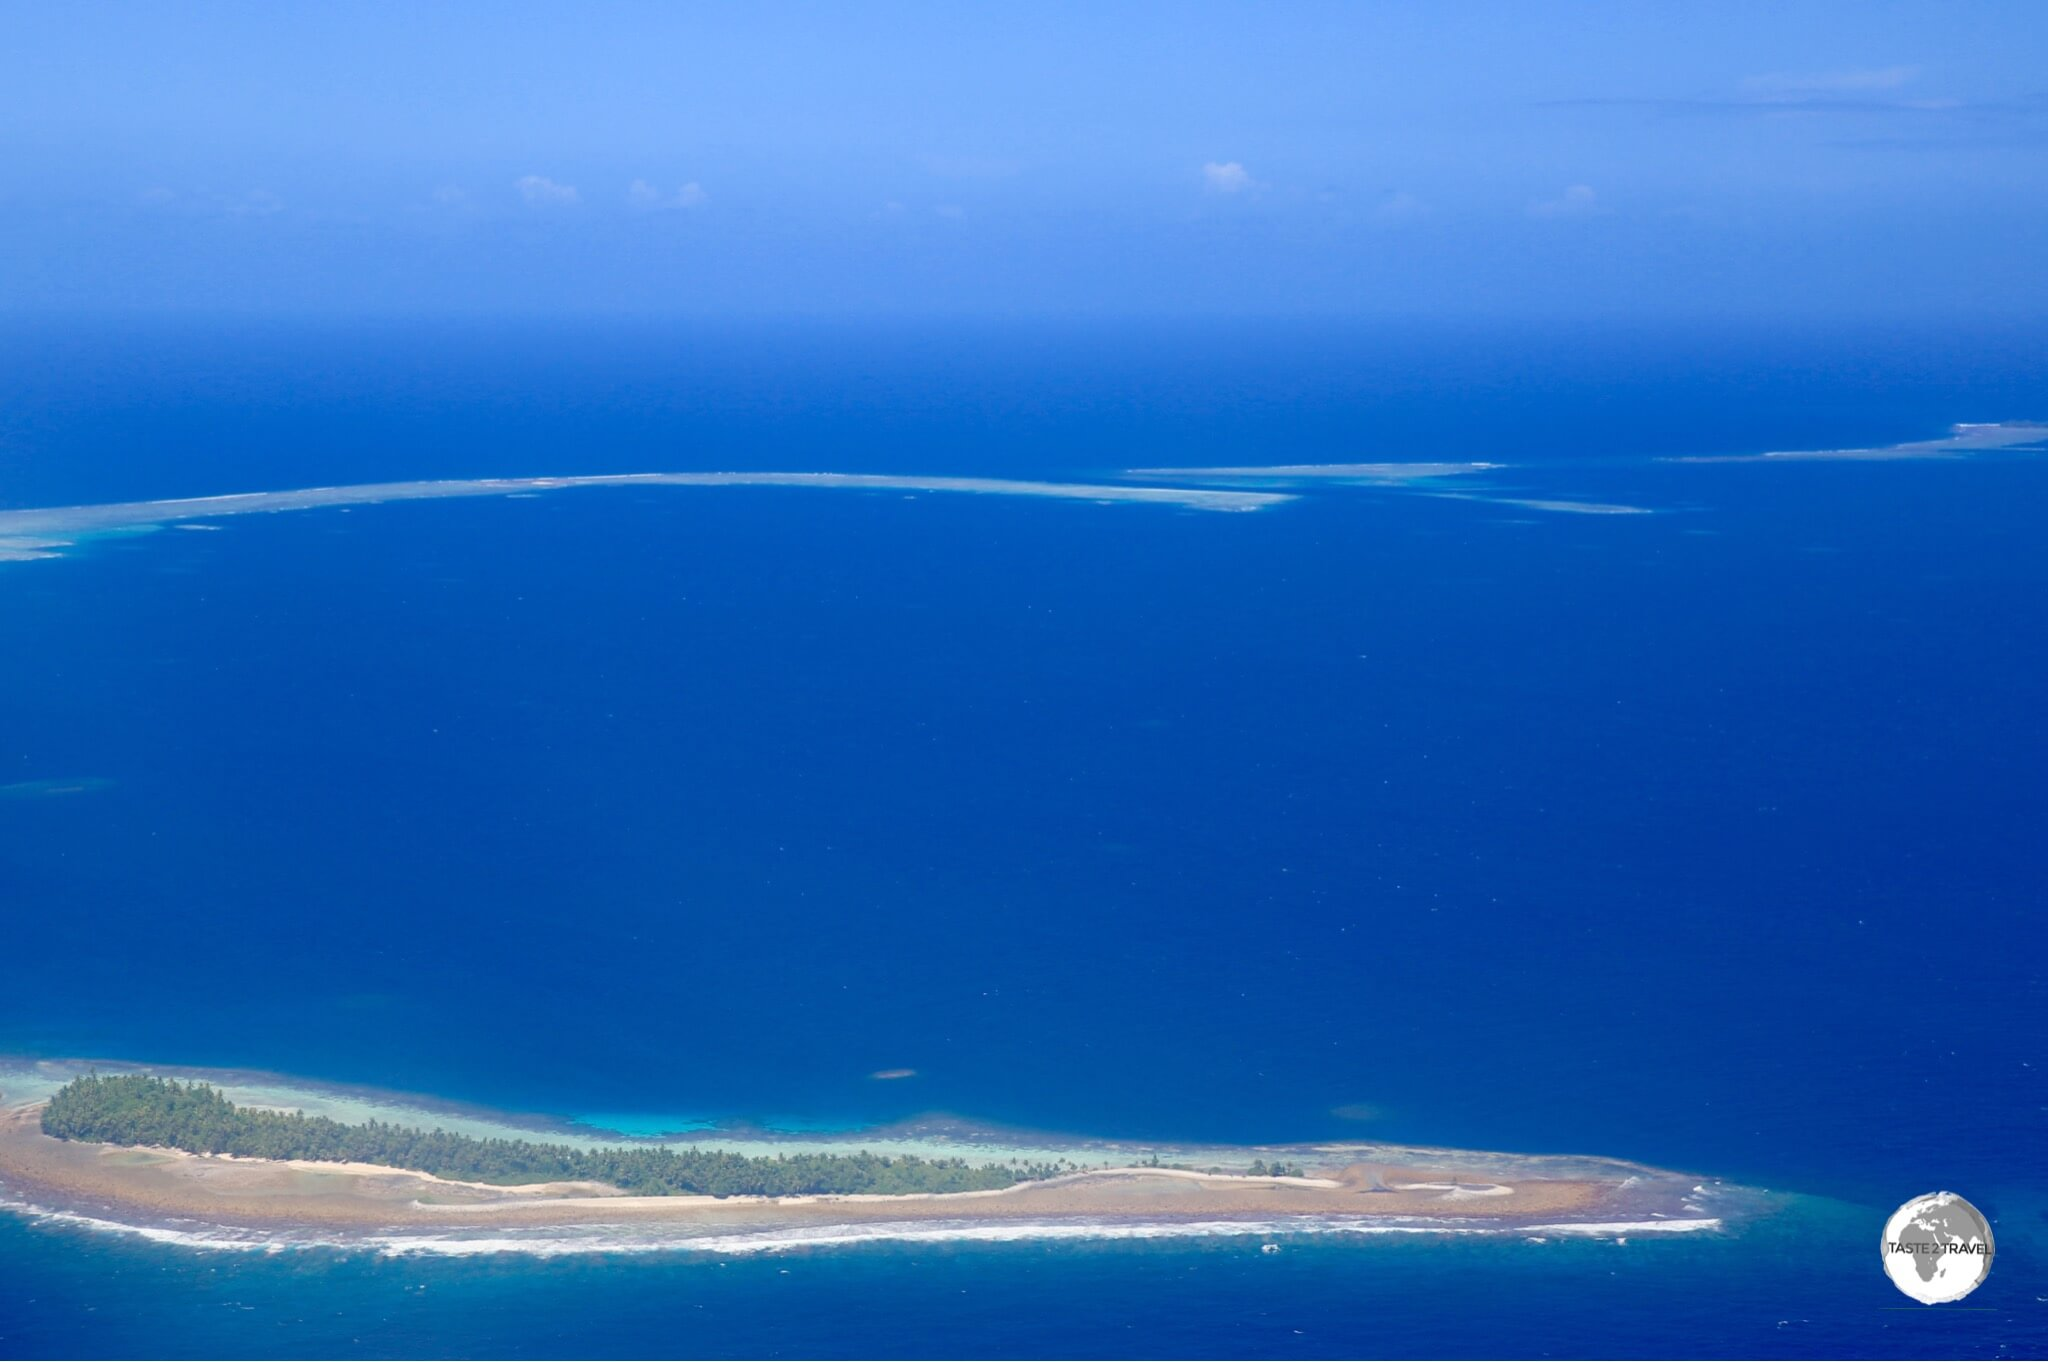 Tuvalu is comprised of narrow slivers of land surrounded by the vast blue expanse of the Pacific ocean.